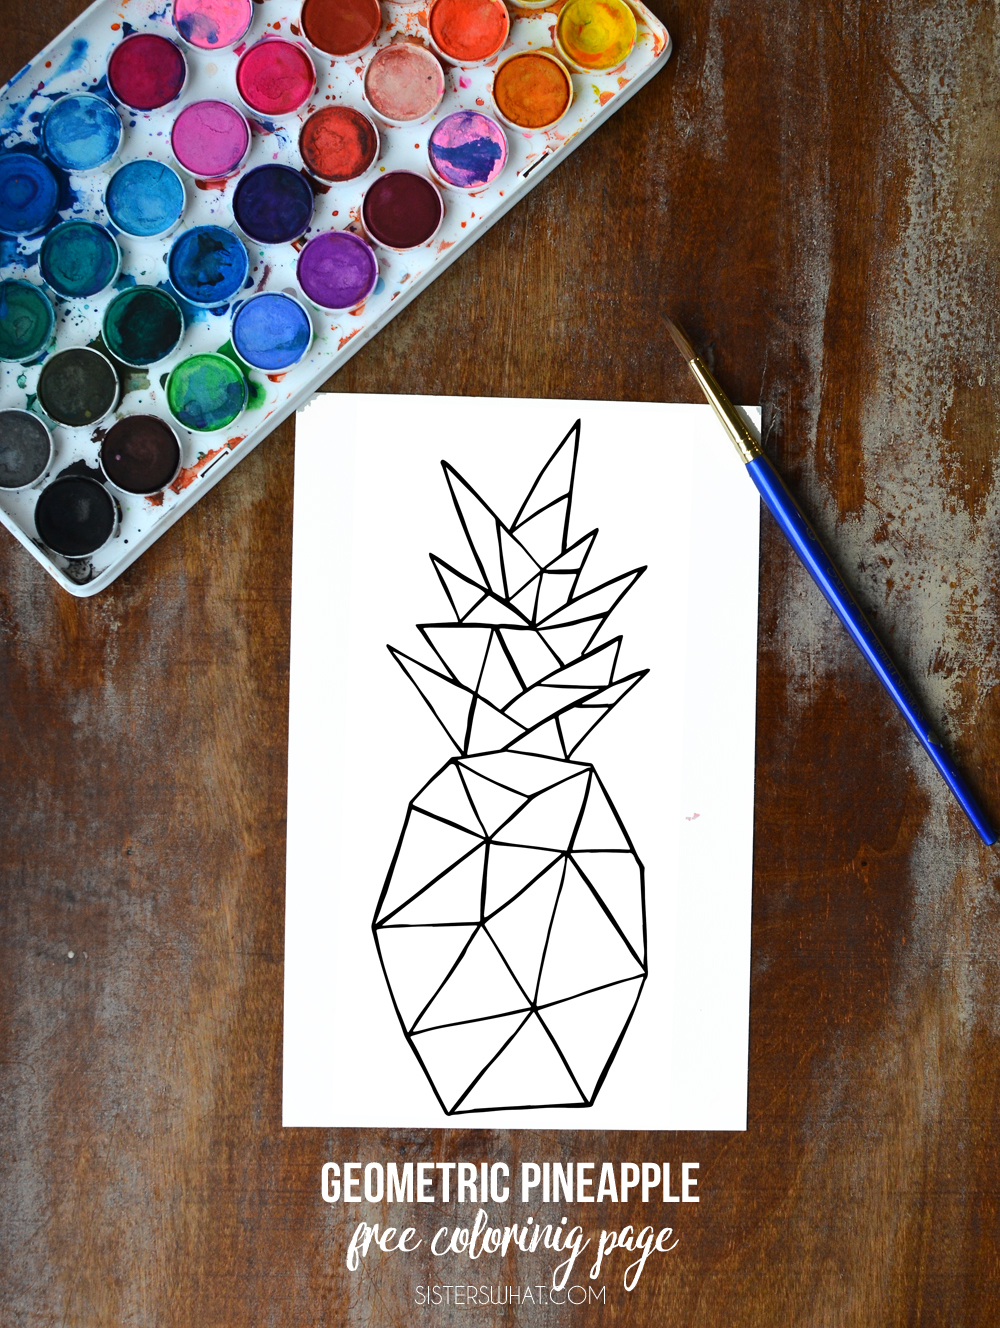 Geometric pineapple free coloring page - perfect for watercolor!